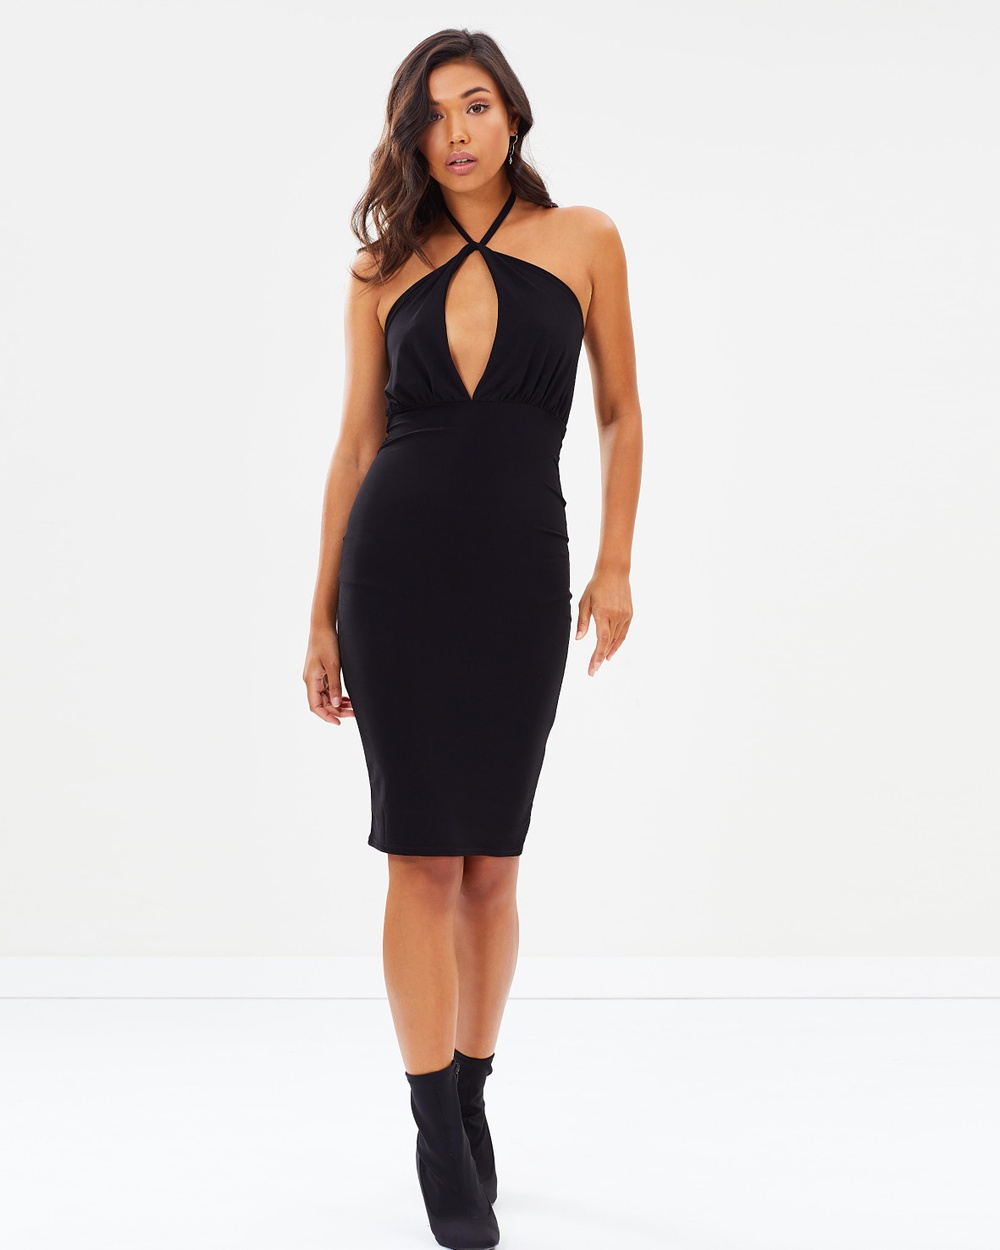 Photo of Missguided Missguided Slinky Tie Neck Twist Keyhole Midi Dress Bodycon Dresses Black Slinky Tie-Neck Twist Keyhole Midi Dress - Bold and straight-talking, UK fashion brand Missguided takes on global influences of street style and popular culture to deliver a confident collection of figure-hugging bodycon dresses, streetwear-inspired tracksuits and tongue-in-cheek slogan tees to equip millennial women with the power of fashion. Offering the latest catwalk trends at prices you can